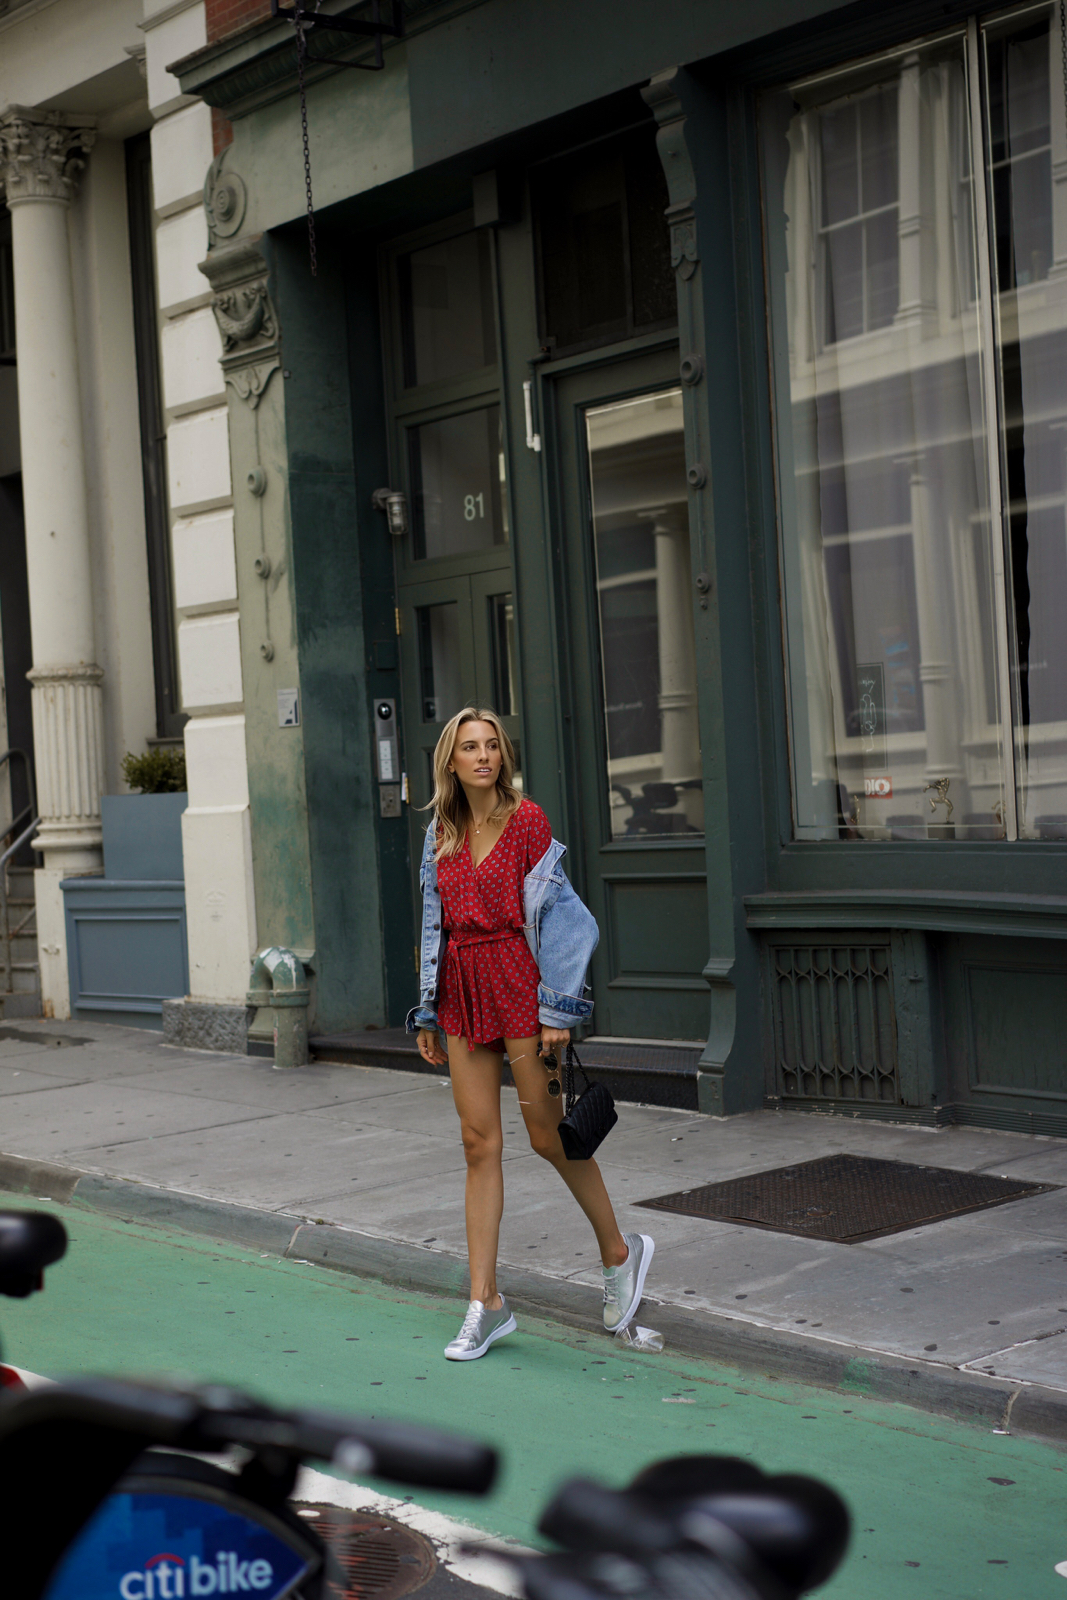 Lacoste sneakers, SoHo NYC, Red Romper, Vintage Denim Jacket, Round Sunglasses